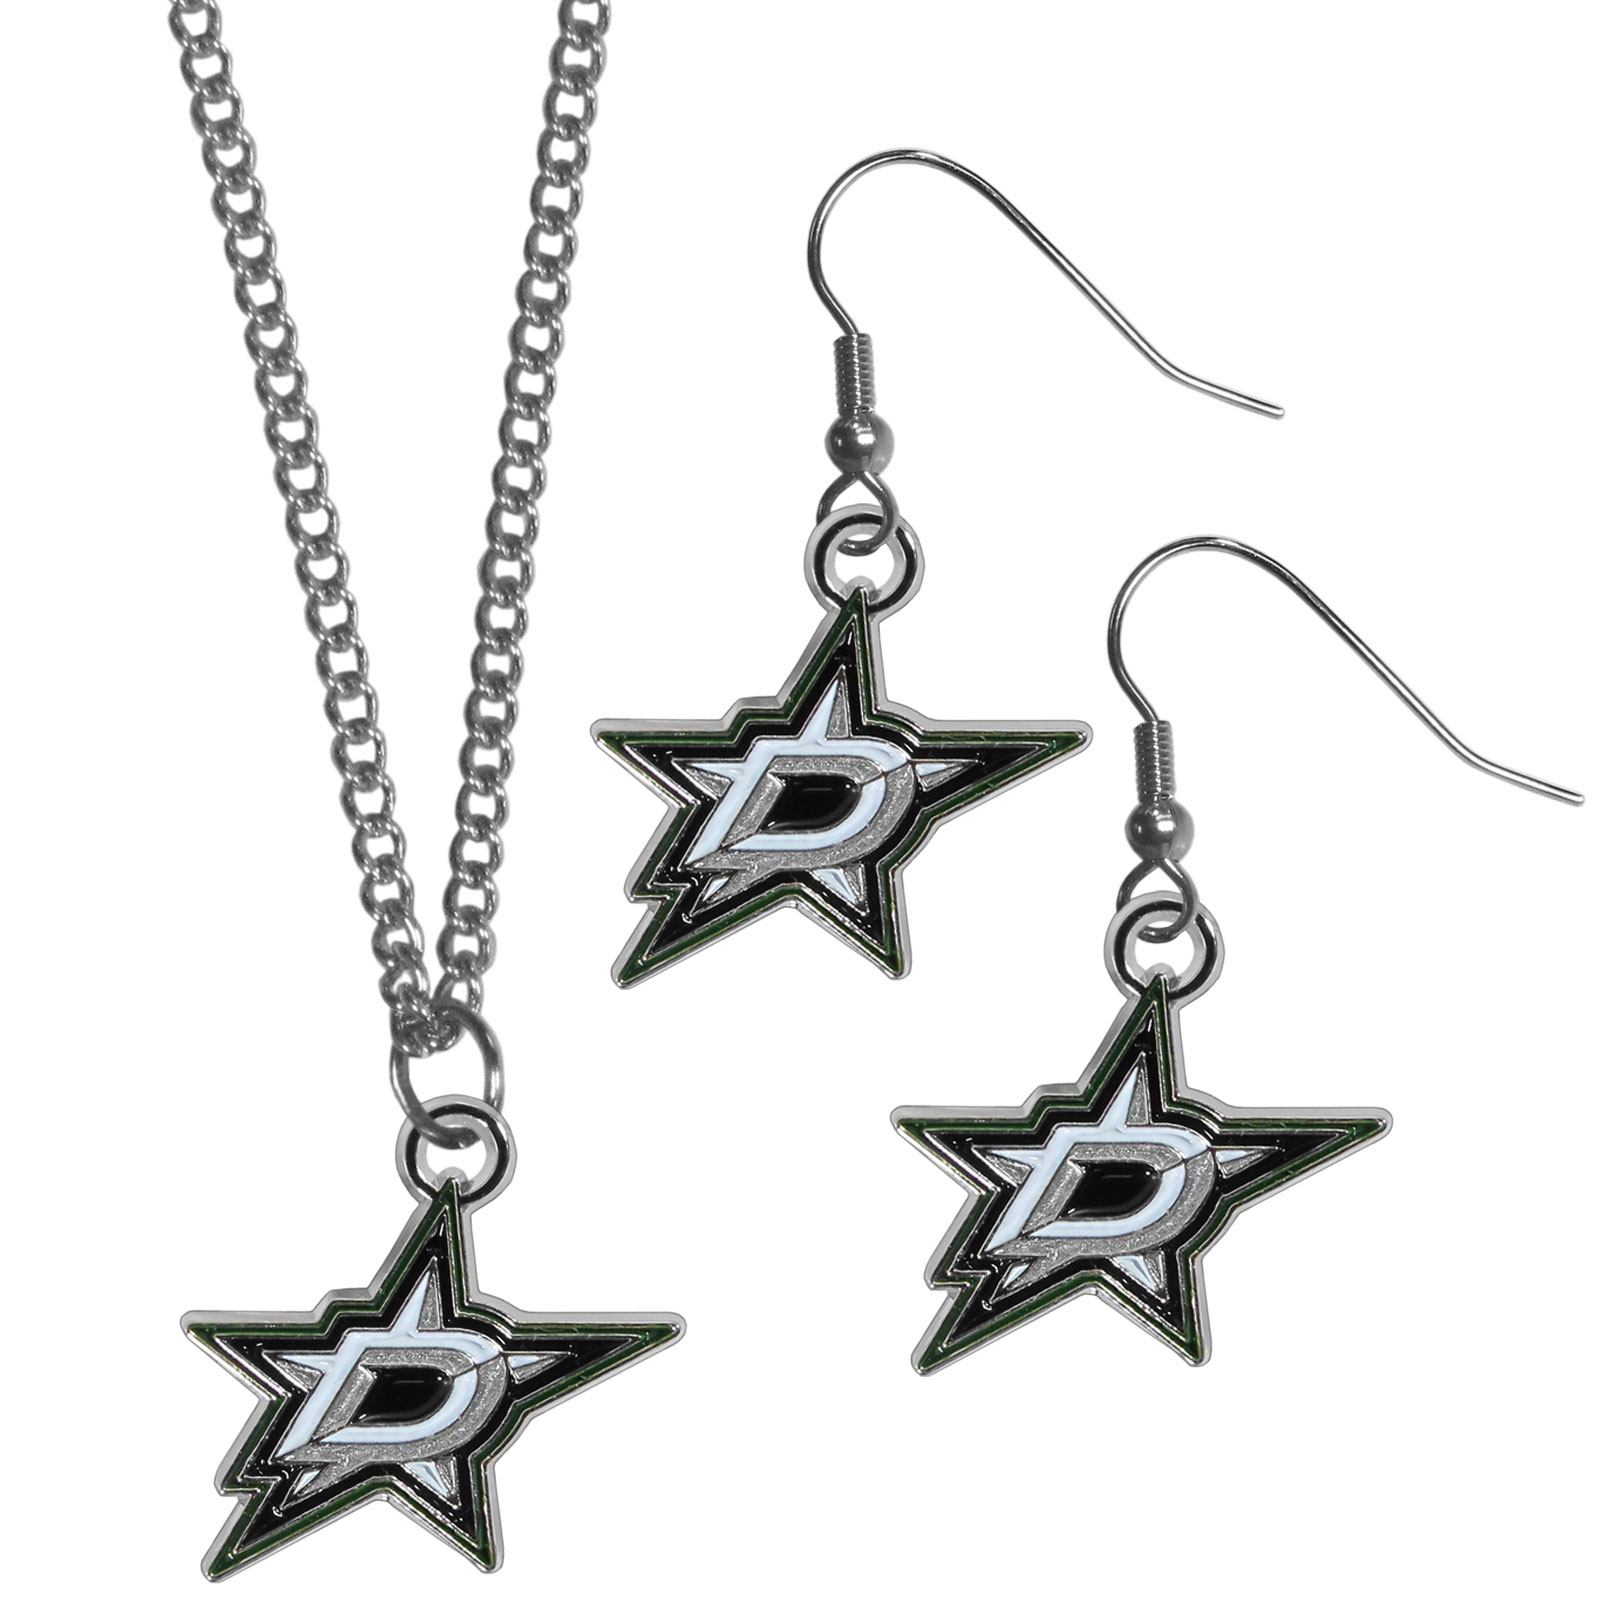 Dallas Stars™ Dangle Earrings and Chain Necklace Set - This classic jewelry set contains are most popular Dallas Stars™ dangle earrings and 22 inch chain necklace. The trendy, dangle earrings are lightweight and feature a fully cast metal team charm with enameled team colors. The matching necklace completes this fashion forward combo and is a spirited set that is perfect for game day but nice enough for everyday.